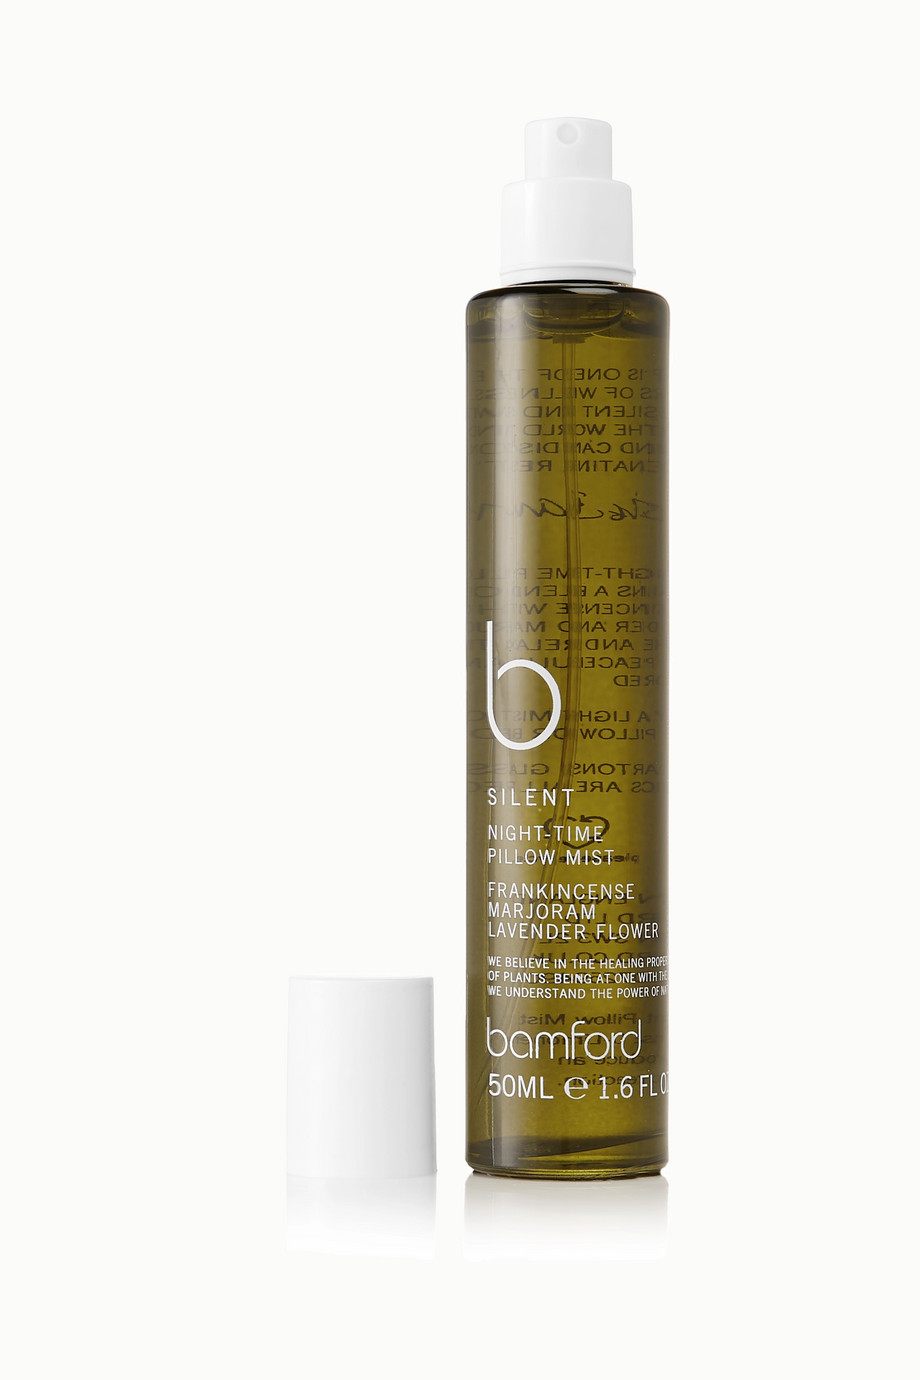 BAMFORD B Silent Night-Time Pillow Mist, 50ml